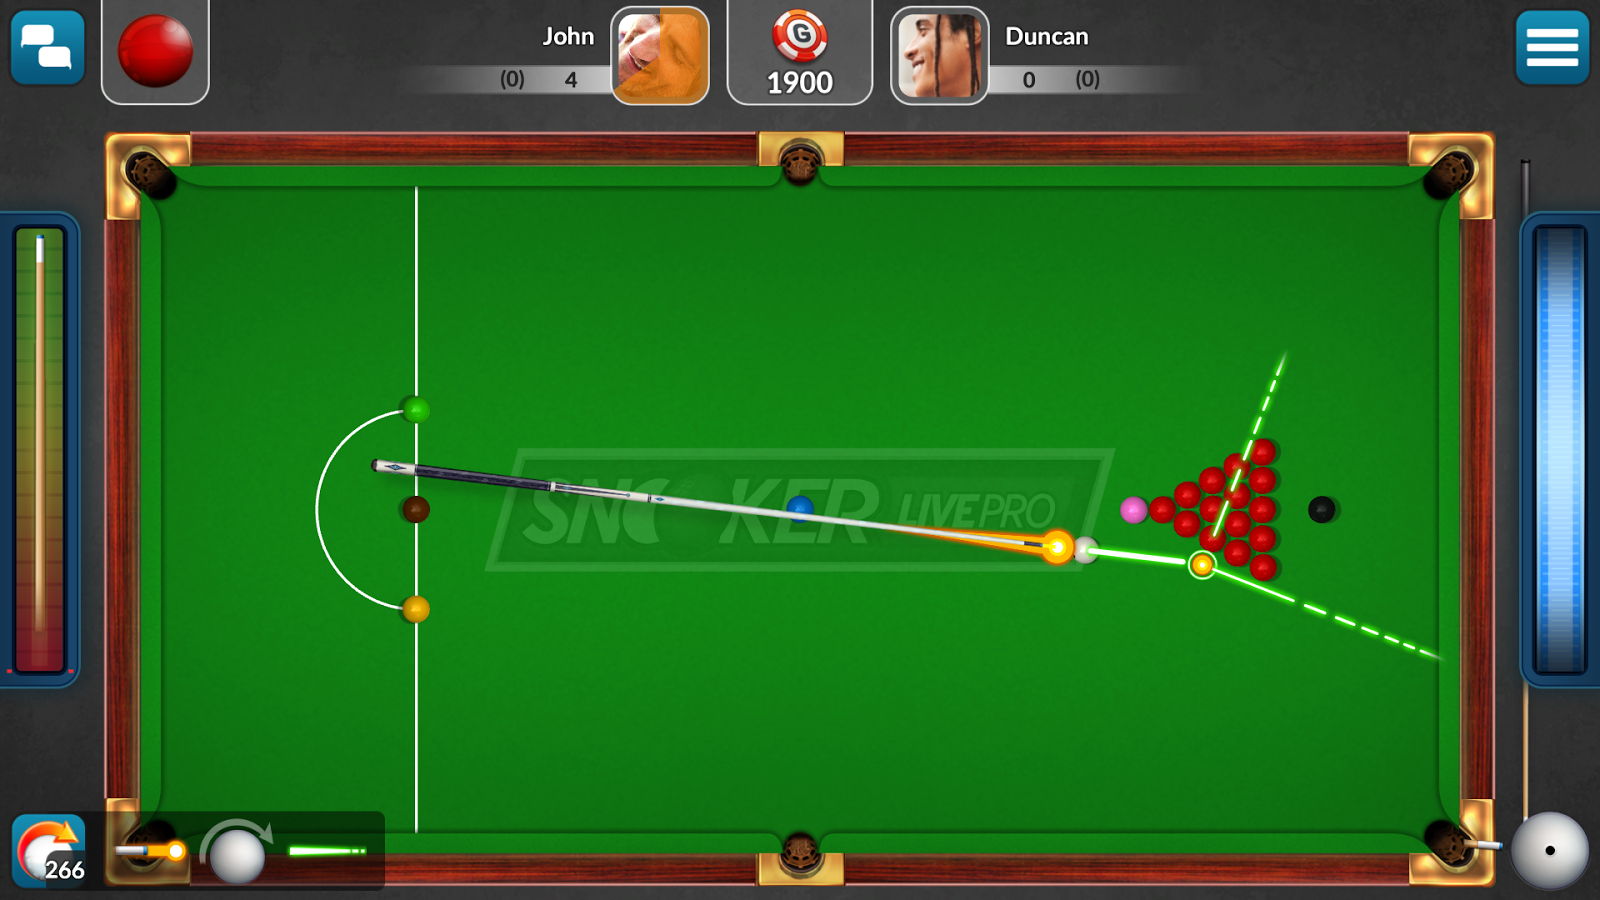 Snooker Live Pro Screenshot 6